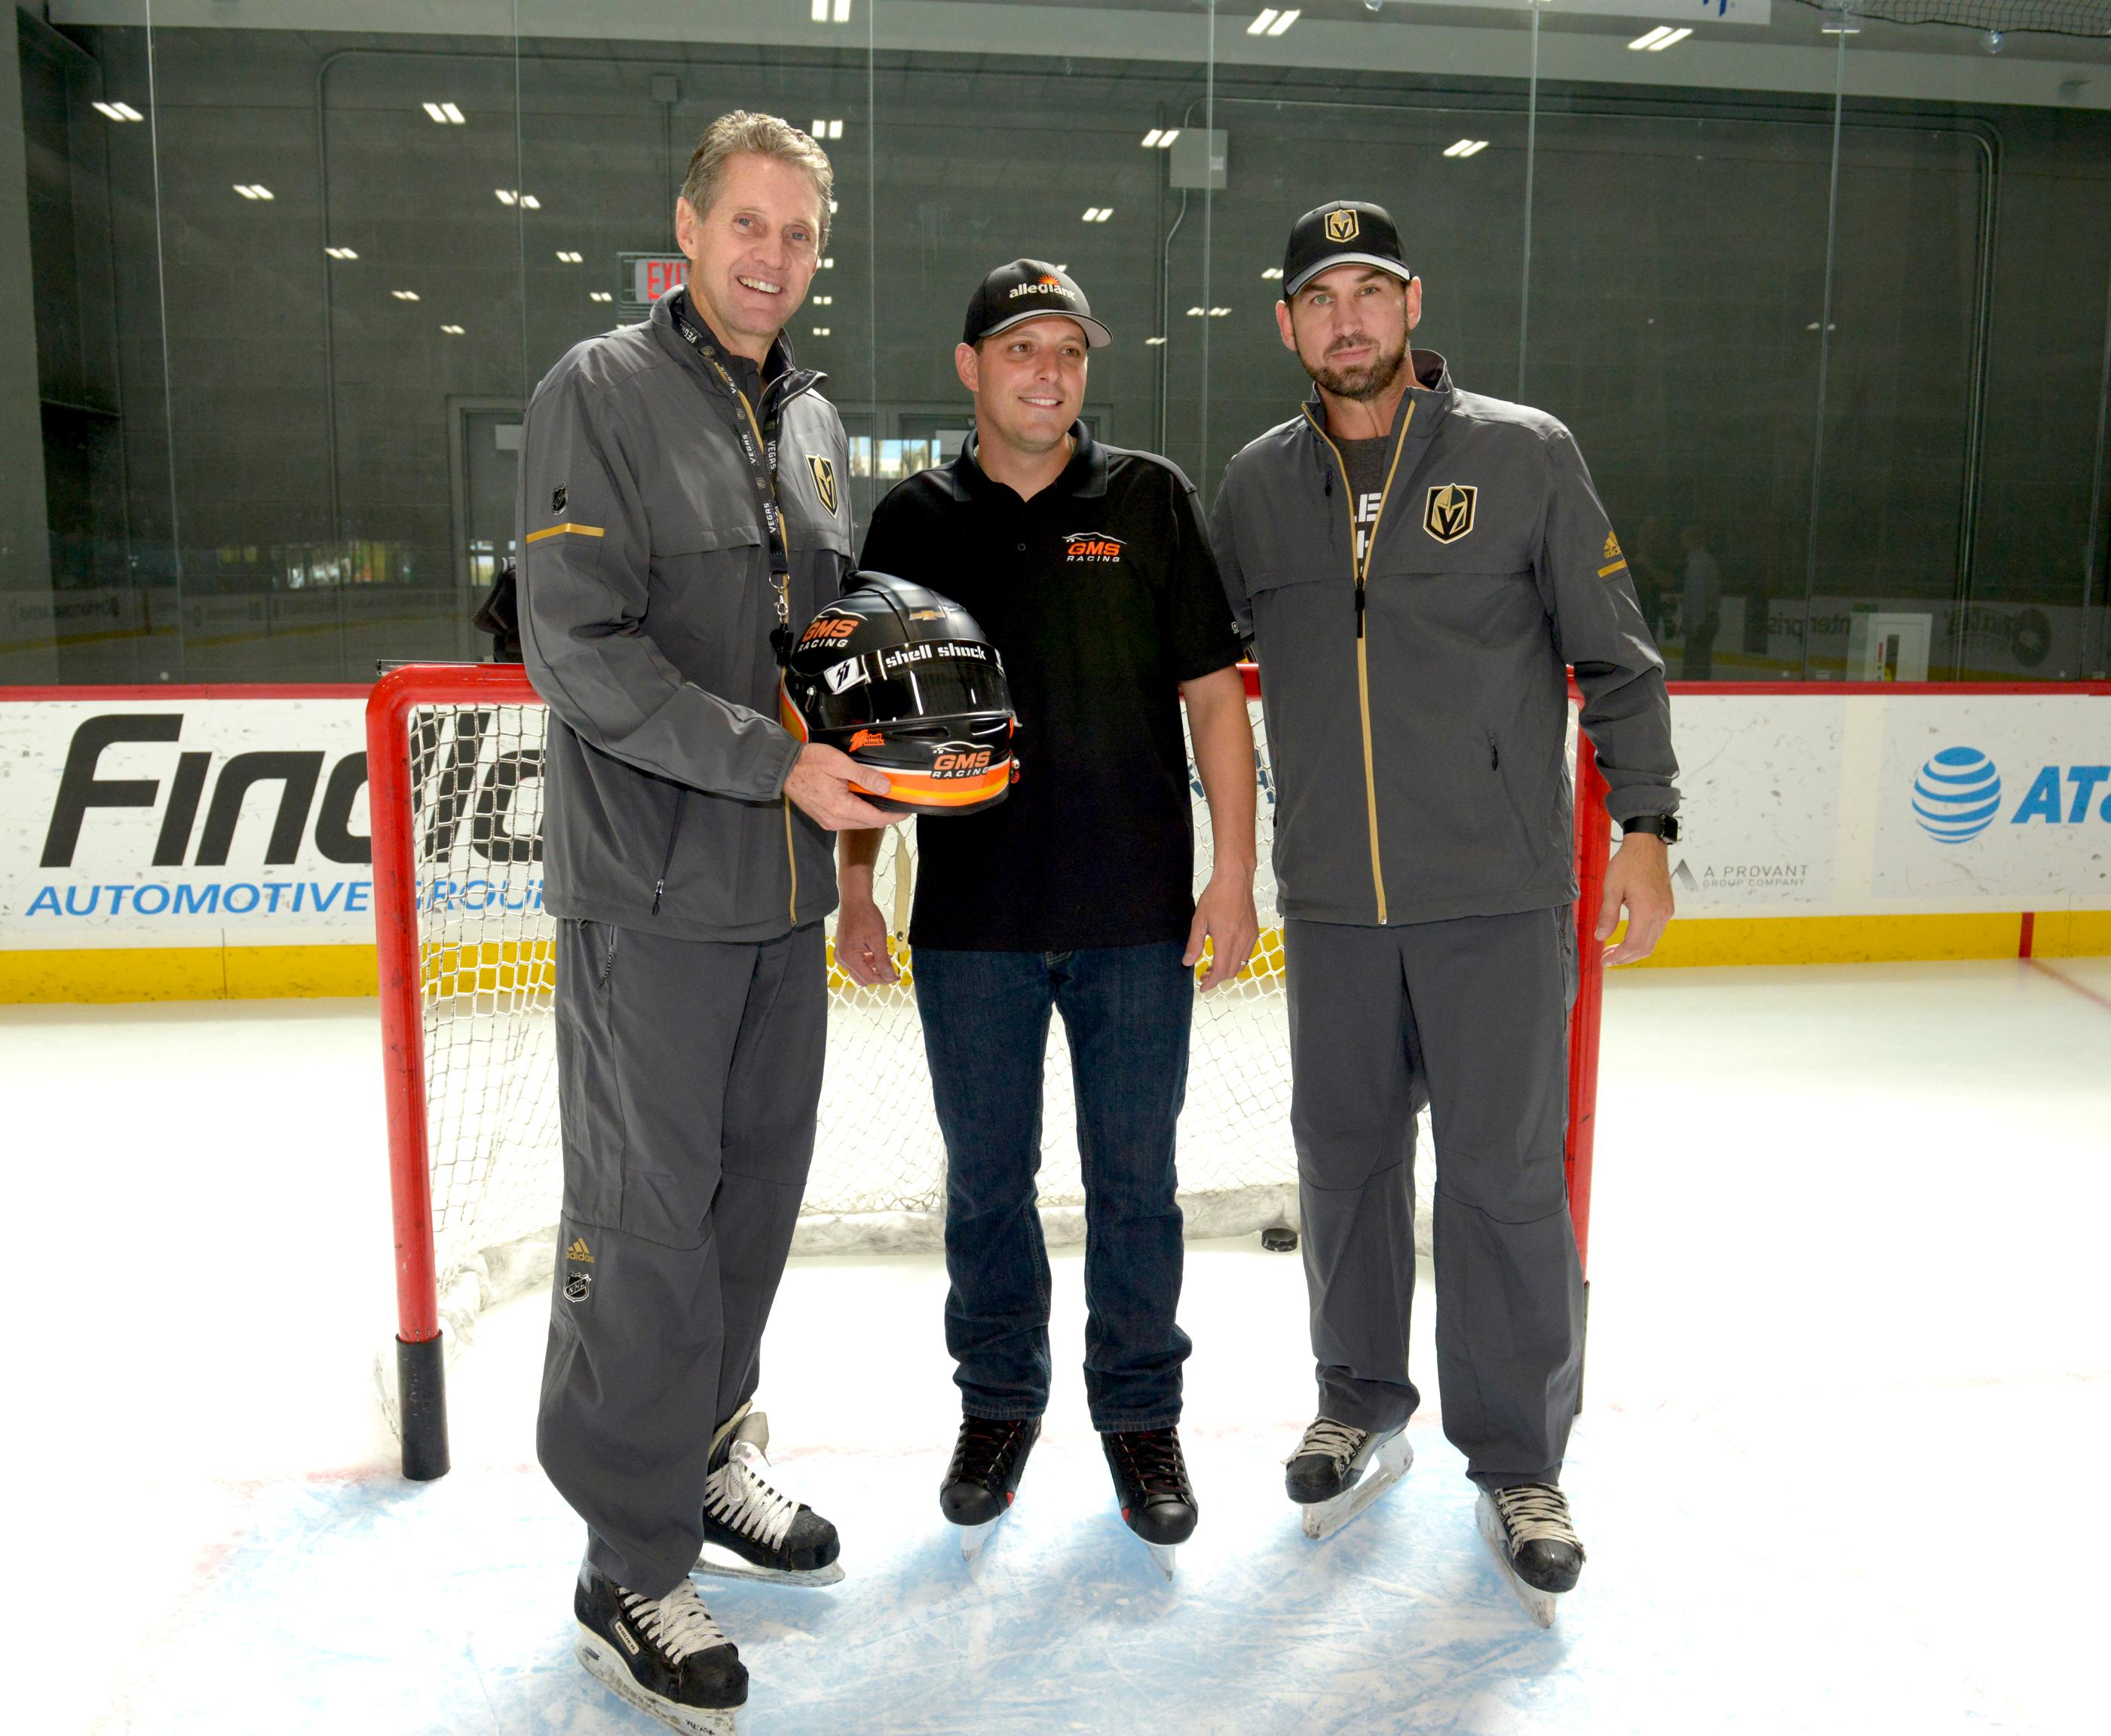 Johnny Sauter (ctr) NASCAR Camping World Truck Series Champion presents his winning helmet to Murray Craven (l), retired hockey professional for the Las Vegas Golden Knights Hockey Team during a hockey skills clinic led by retired hockey professional and Golden Knights TV Analyst Shane Hnidy (r) at City National Arena in Las Vegas. Friday, September 29, 2017. CREDIT: Glenn Pinkerton/Las Vegas News Bureau